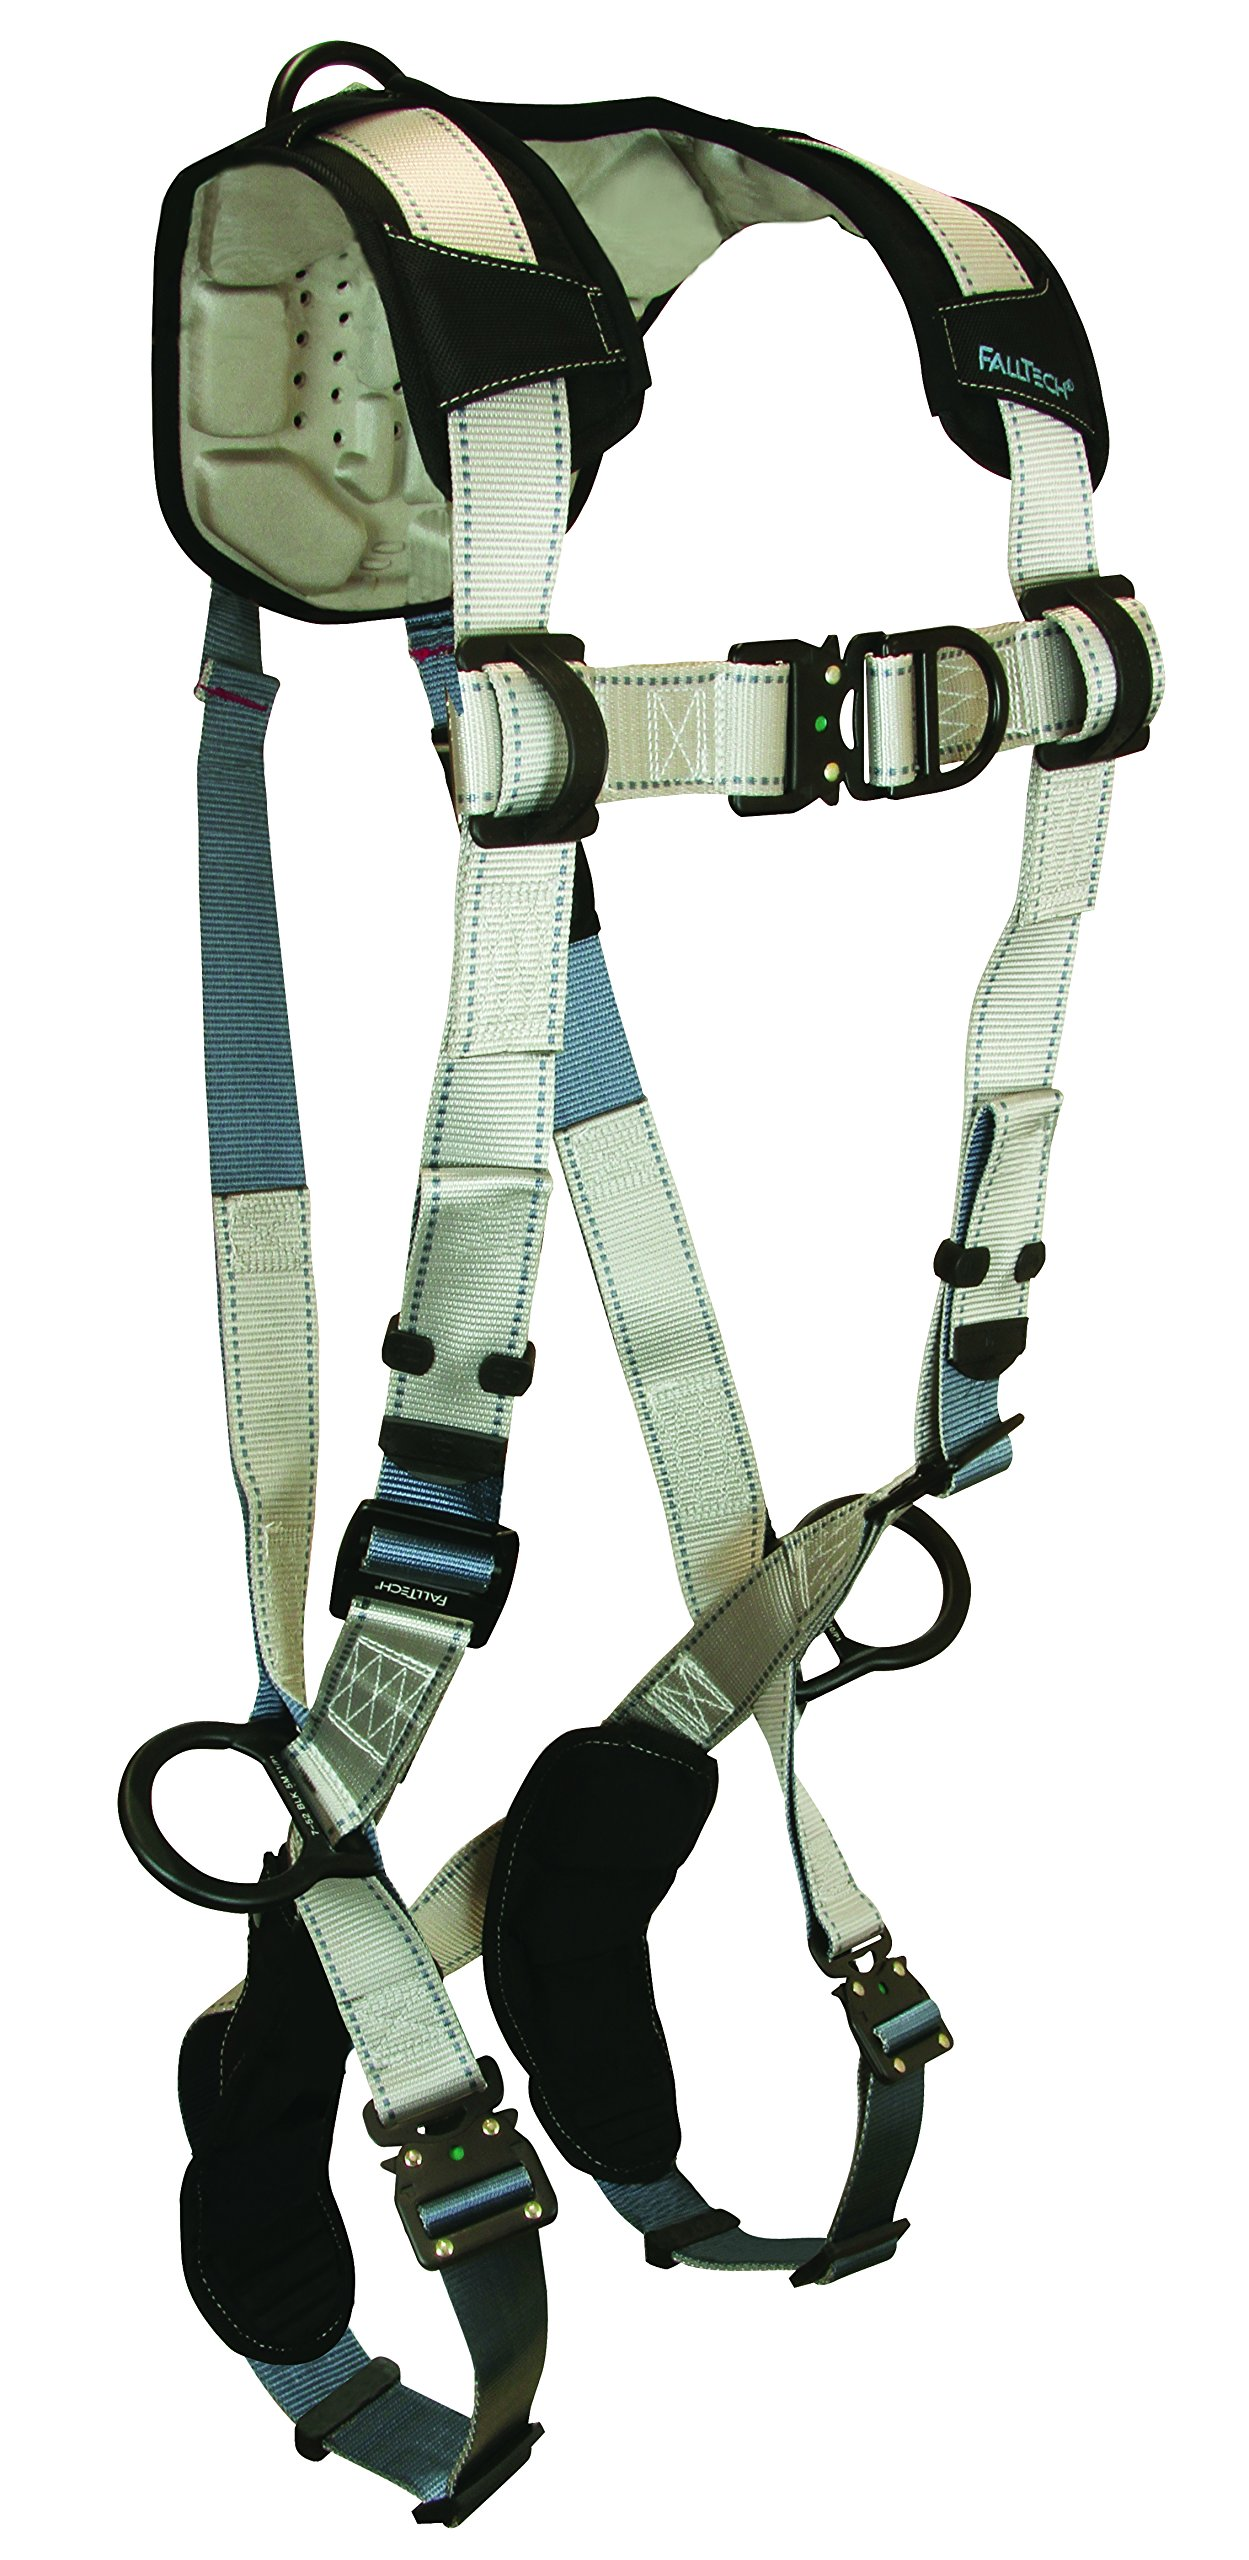 FallTech 7092SFD FlowTech Non-Belted Climbing Full Body Harness with 4 D-Rings, Quick Connect Legs and Chest, FlowScape Shoulder and Leg Pads, Gray/Black, Small